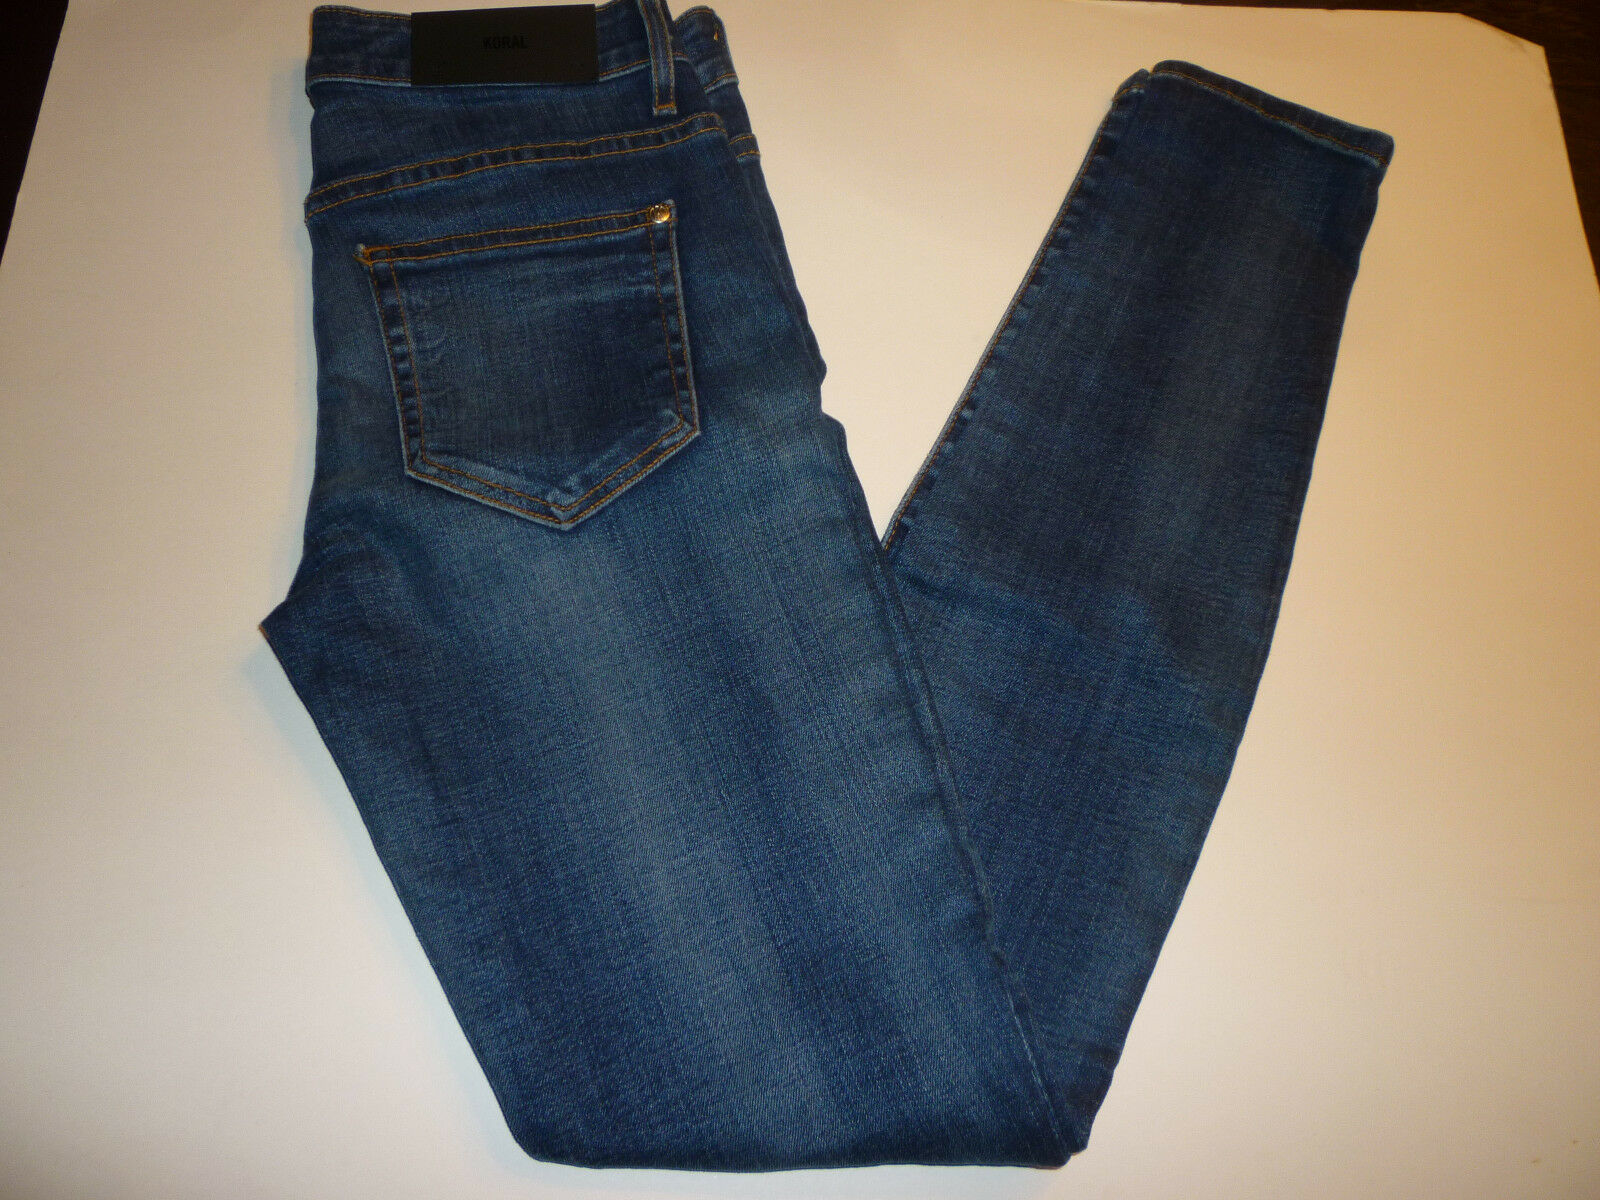 NWT  KORAL bluee Denim 8 Month High Rise Skinny Jeans, Size 28